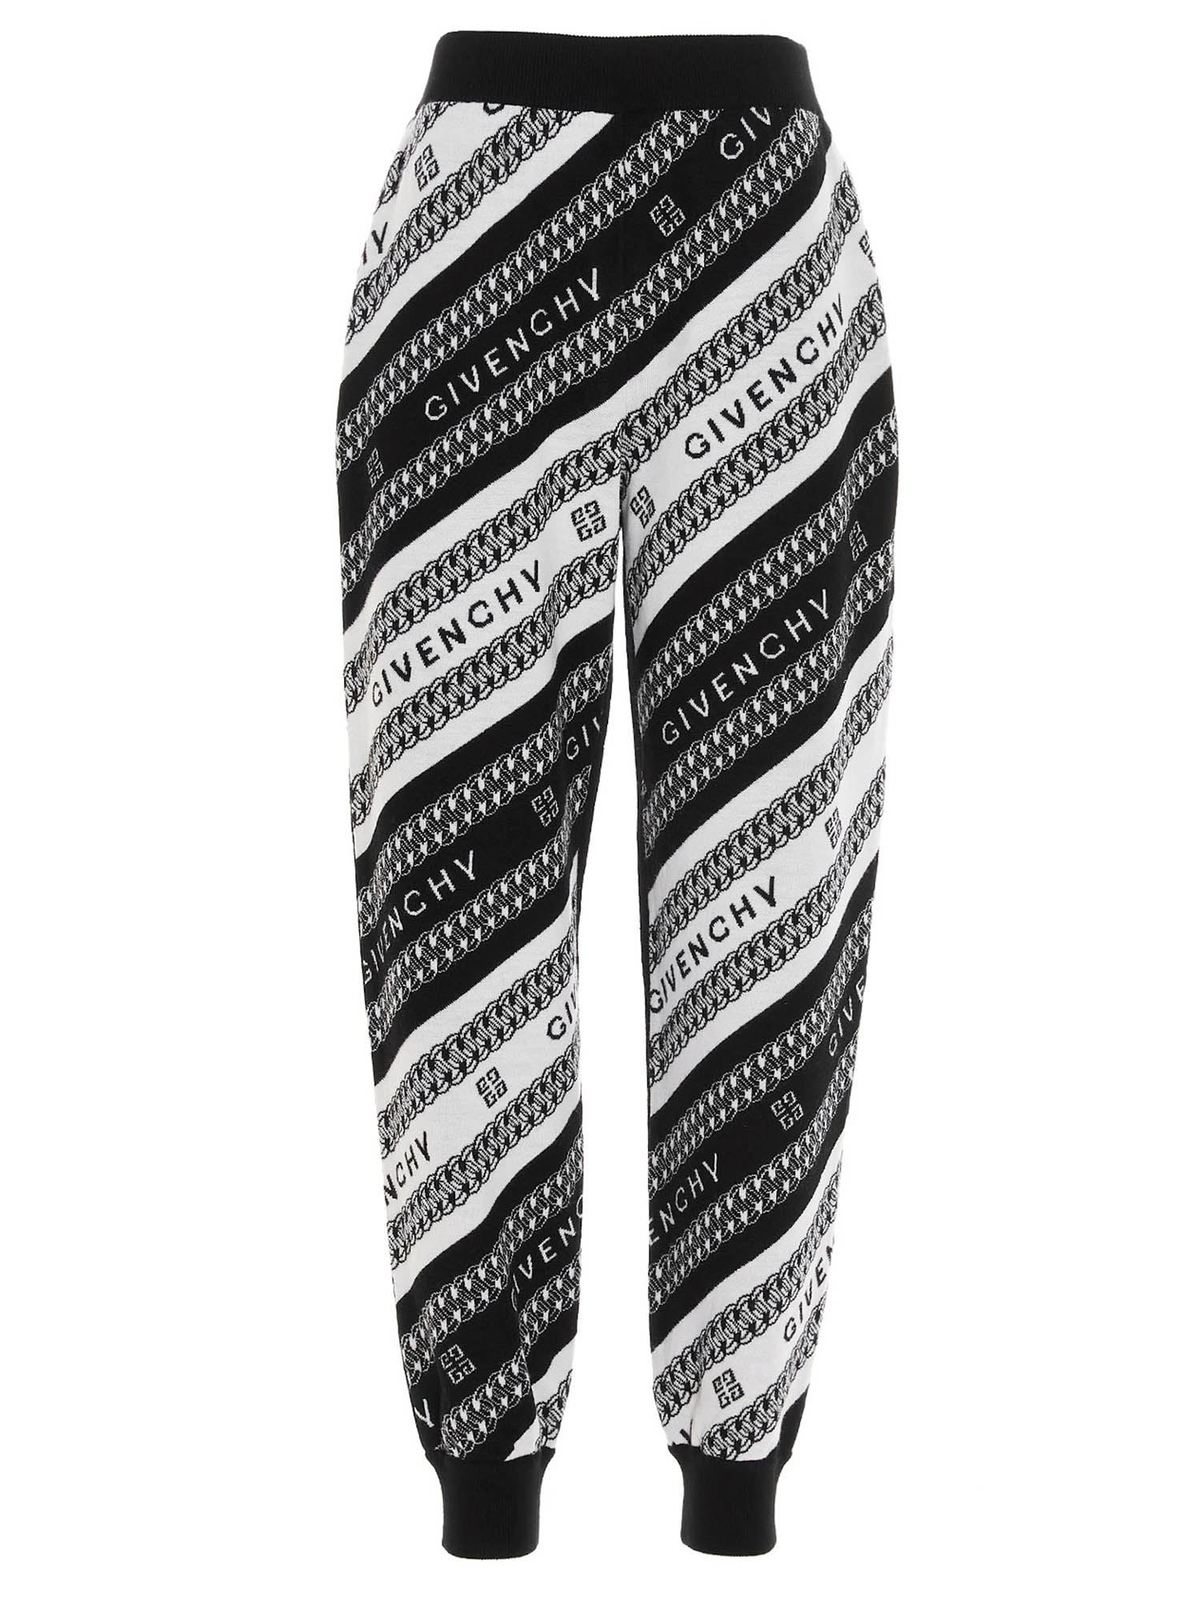 GIVENCHY CHAINE JOGGERS IN BLACK AND WHITE